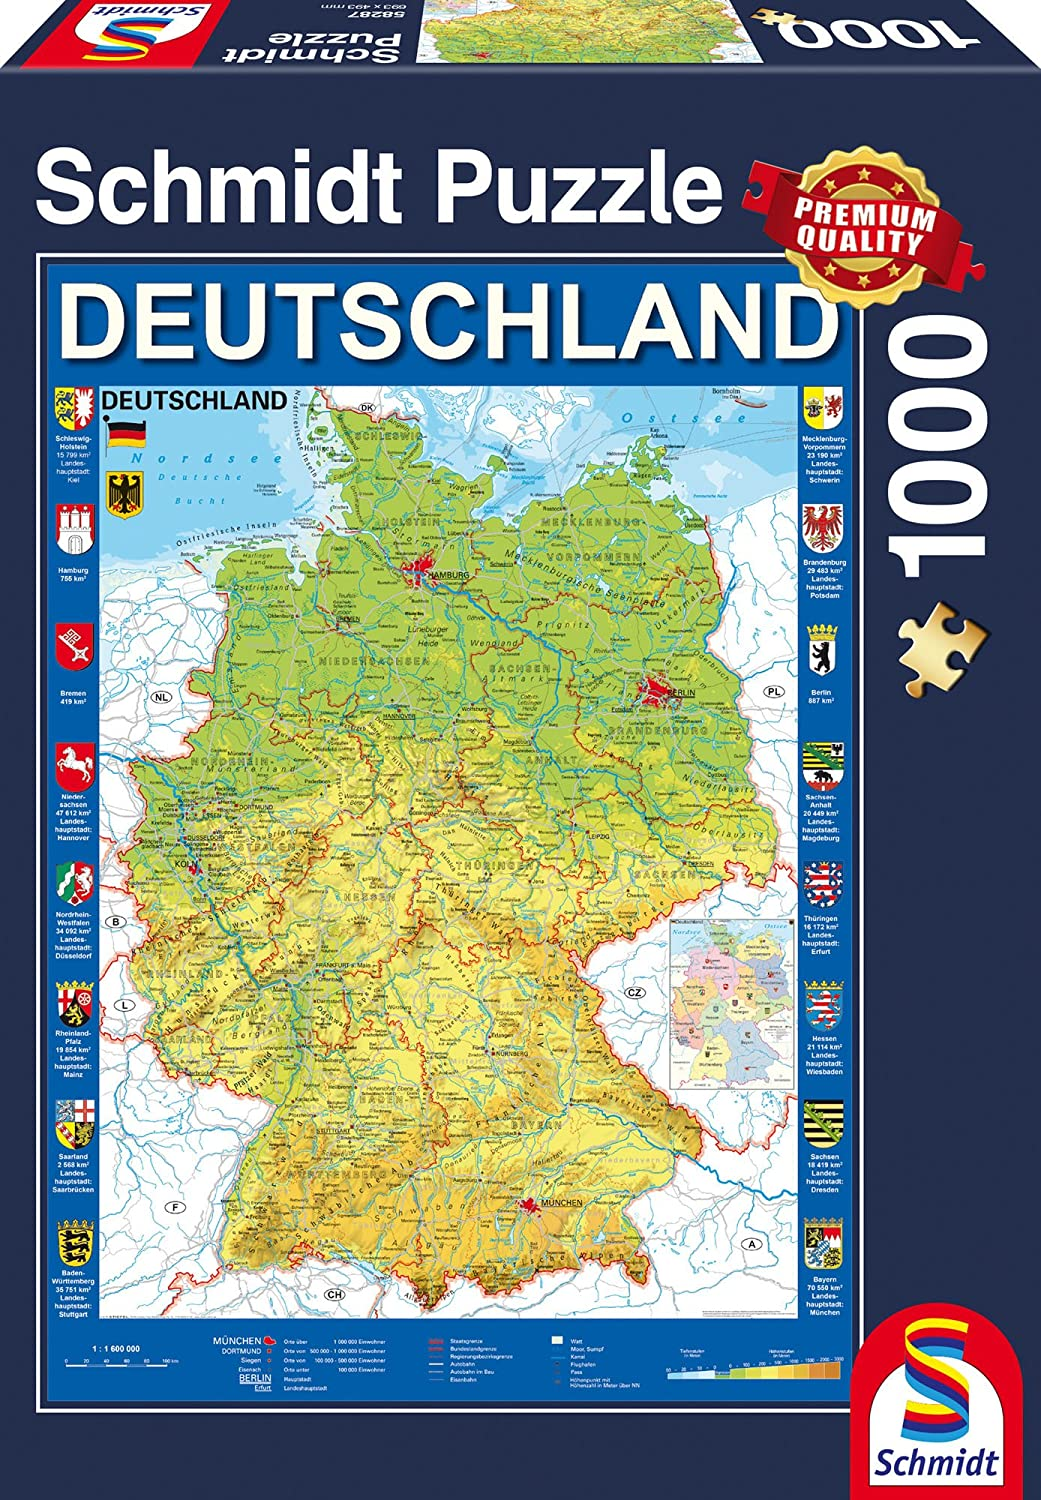 Schmidt spiele jigsaw puzzle 58287 germany map jigsaw puzzle 1000 schmidt spiele jigsaw puzzle 58287 germany map jigsaw puzzle 1000 pieces amazon toys games gumiabroncs